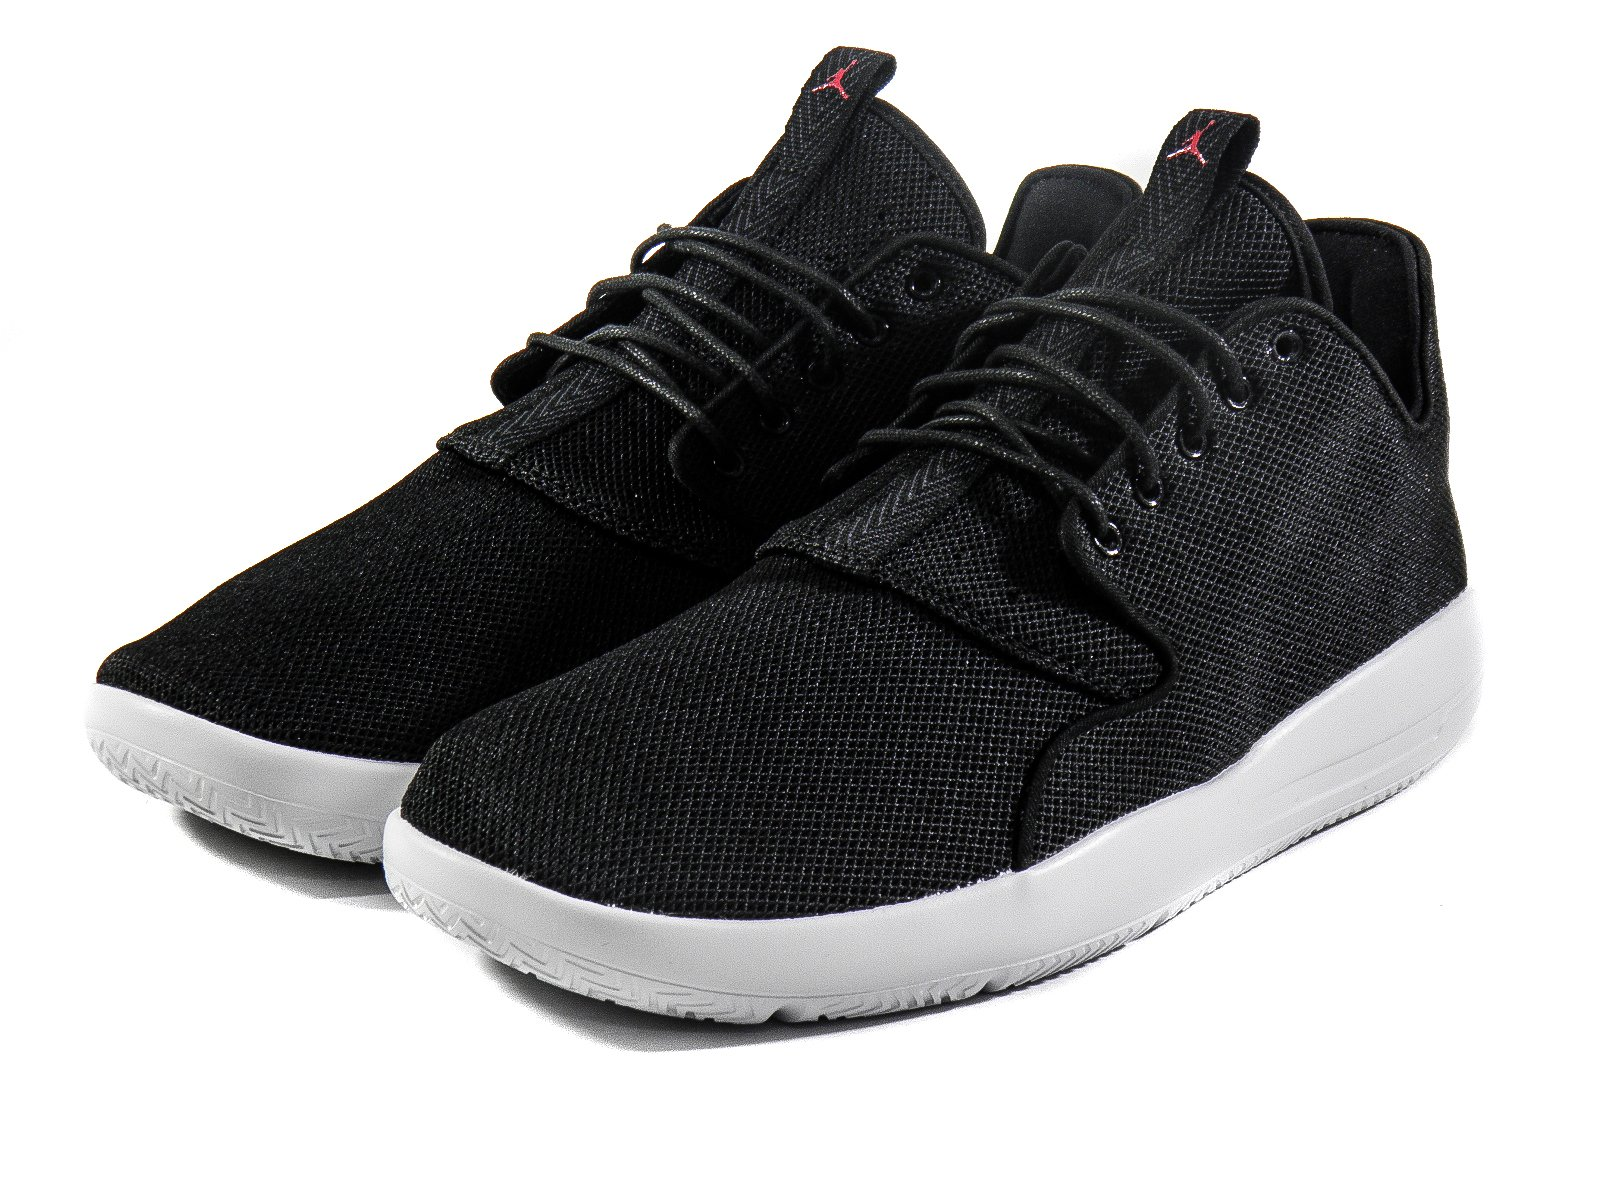 jordan eclipse shoes